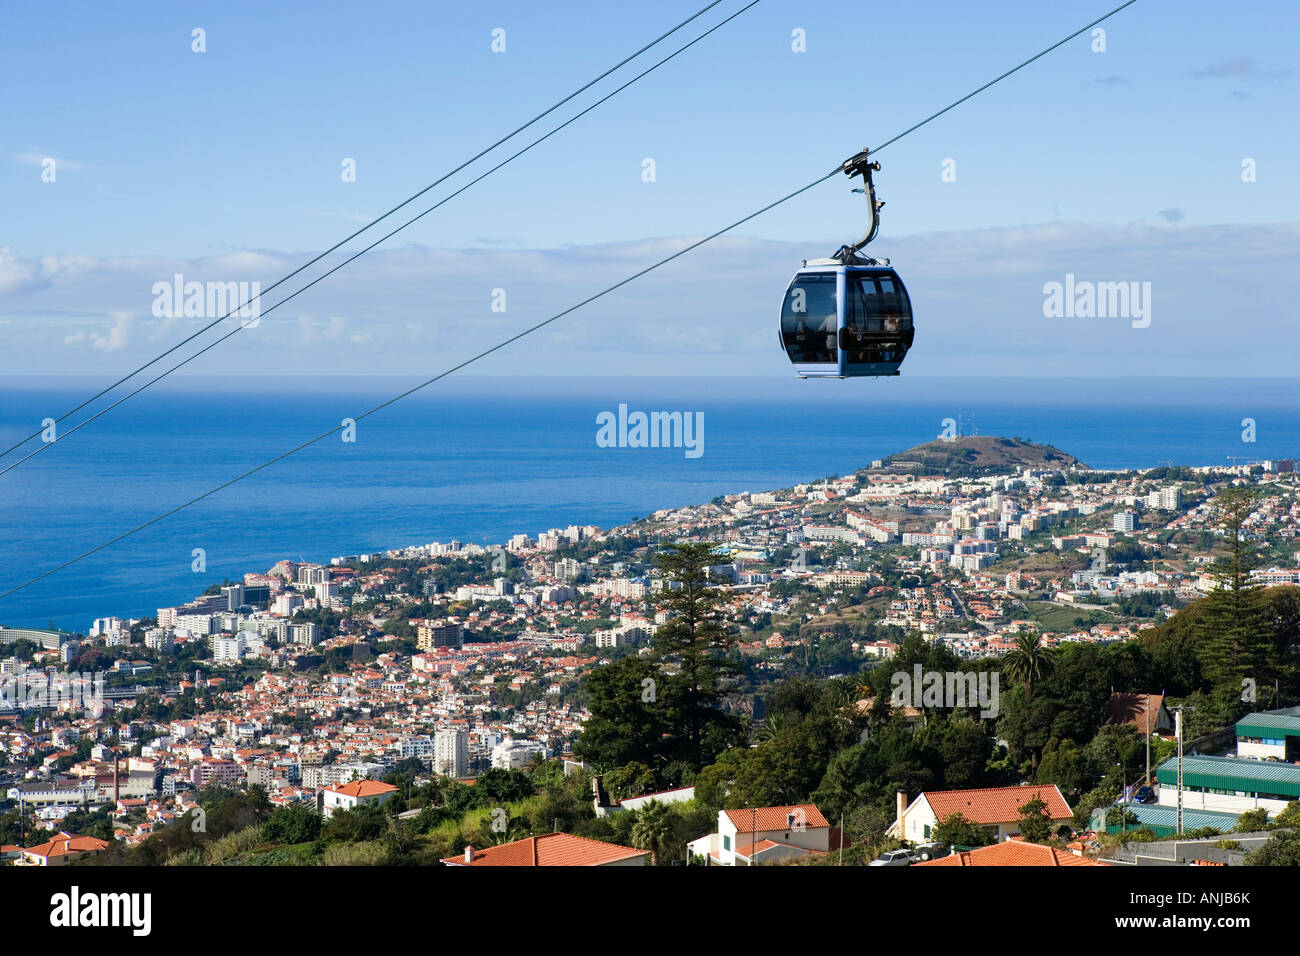 View over City and Monte Cable Car, Funchal, Madeira, Portugal - Stock Image